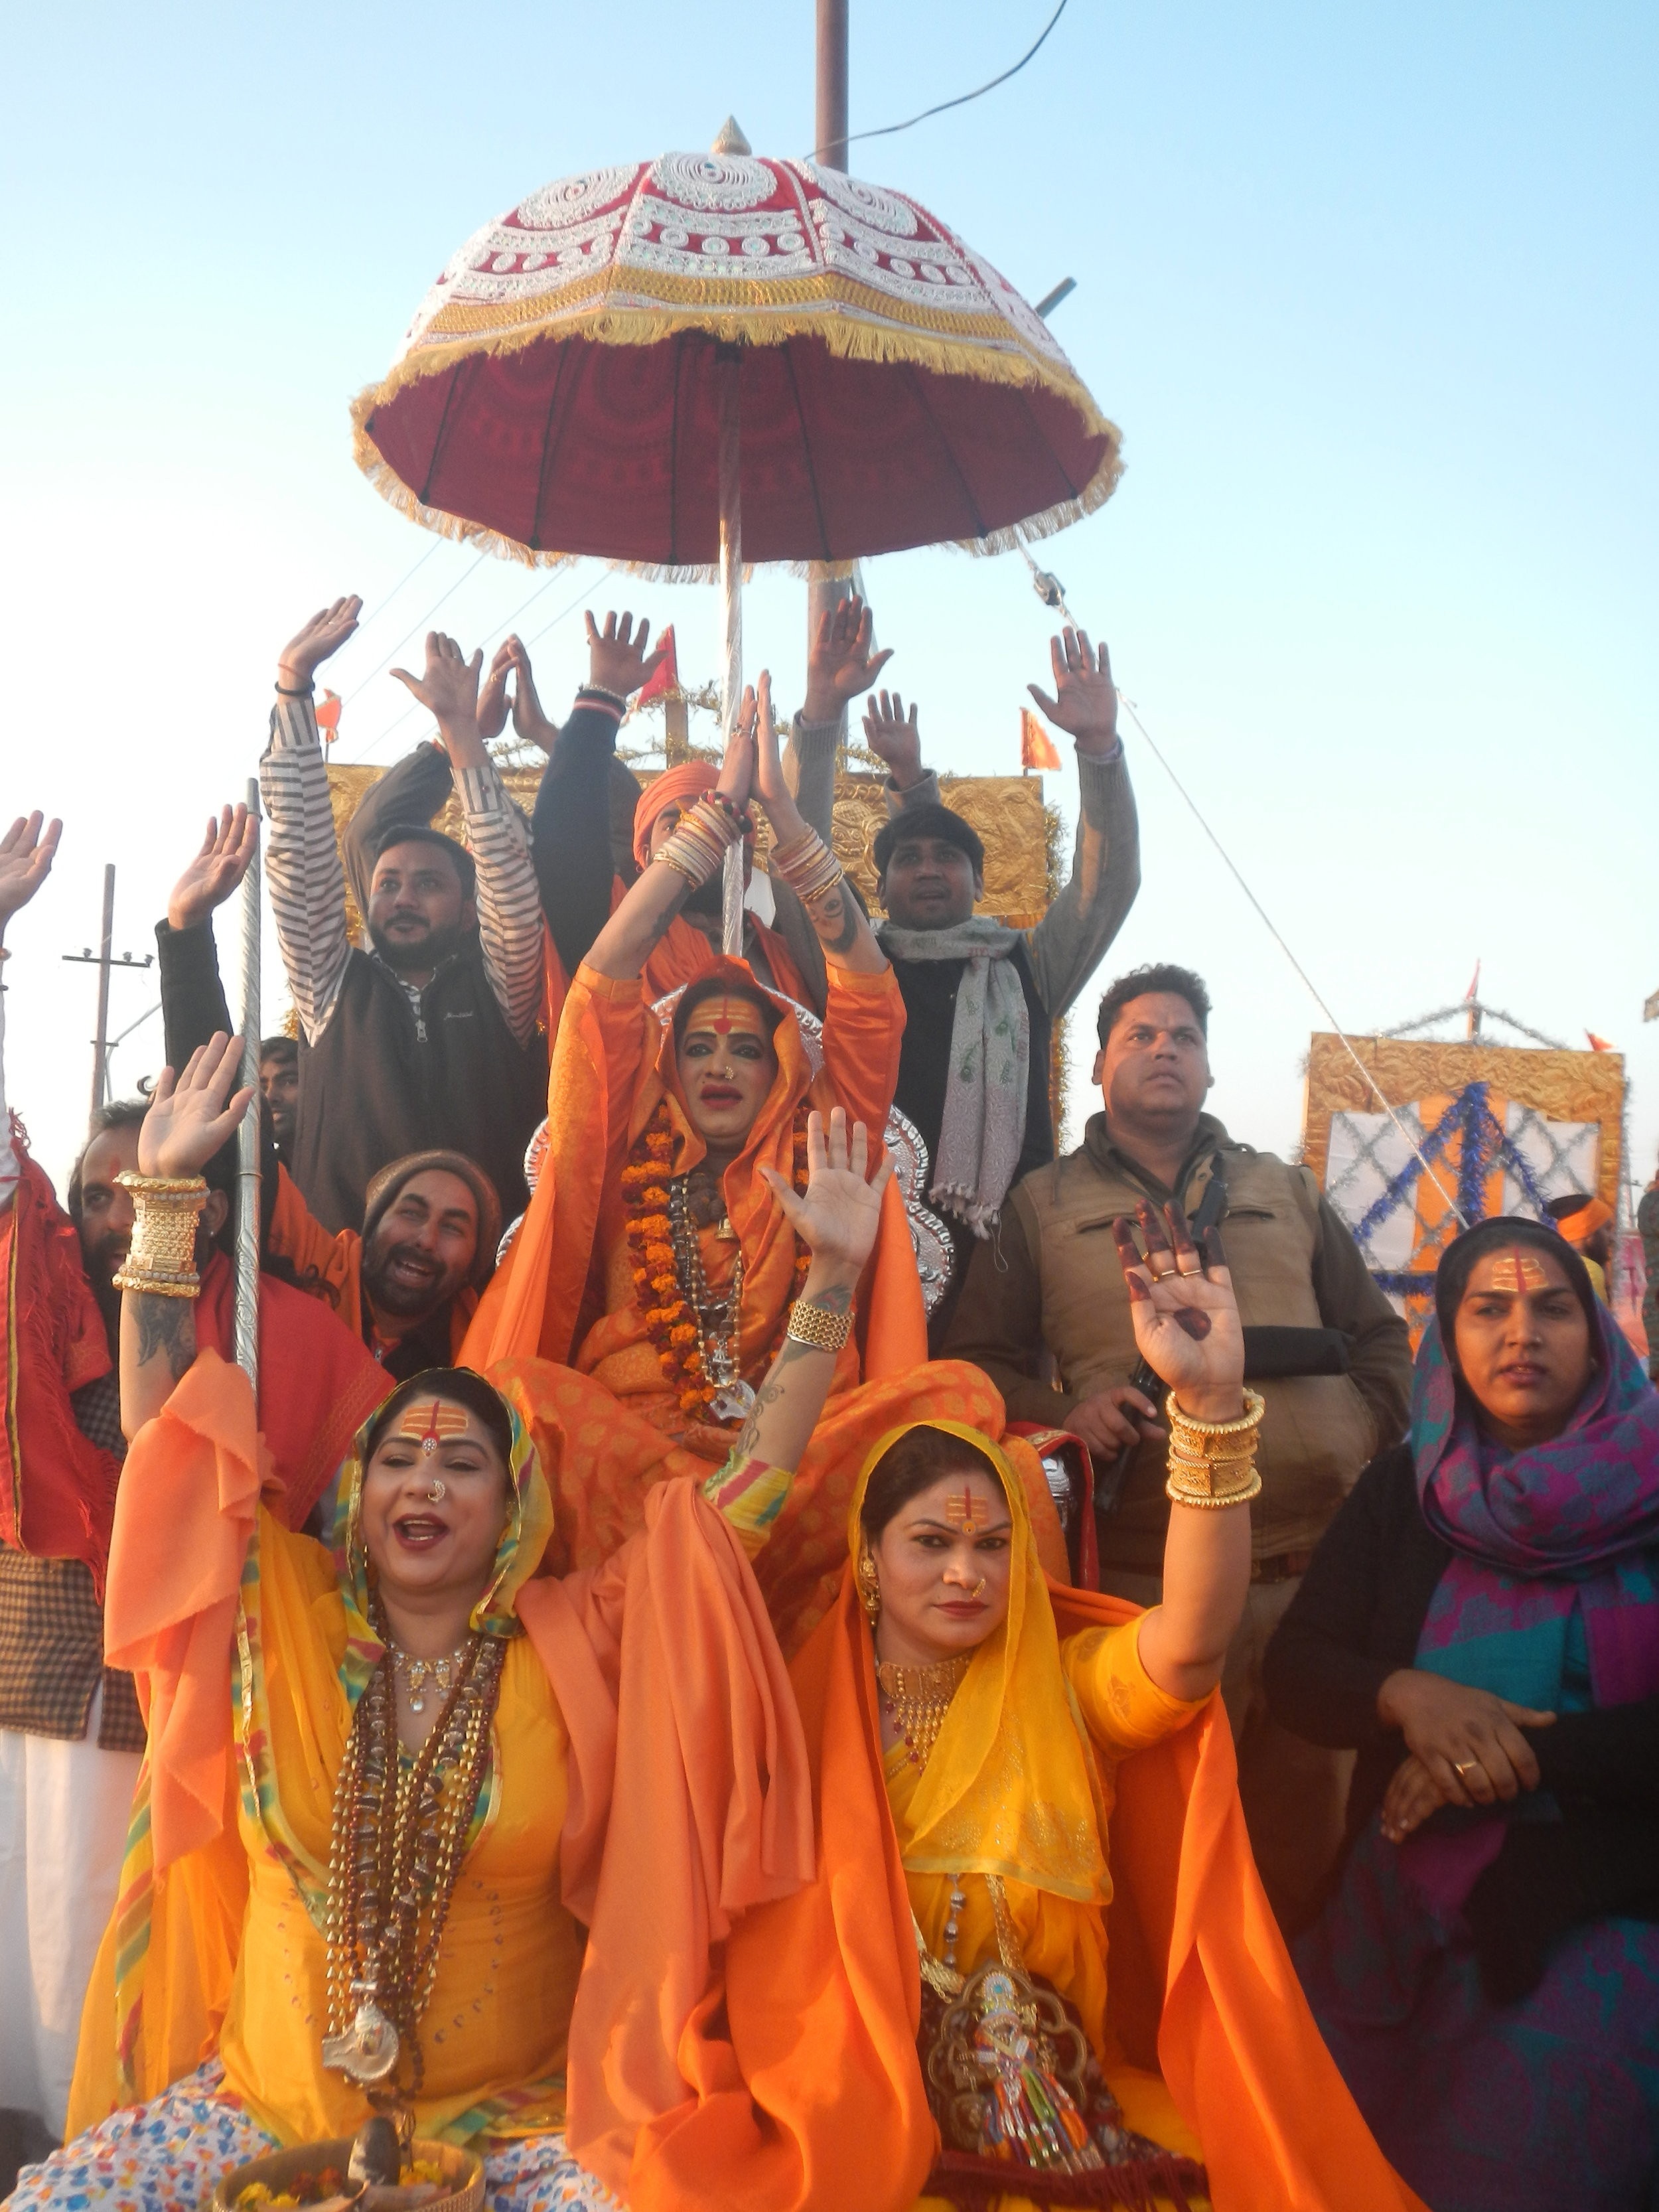 Laxmi Narayan Tripathi (center) along with other transgender seers participate in a religious procession ahead of ceremonial bathing in Prayagraj, India. Photo by Priyadarshini Sen.